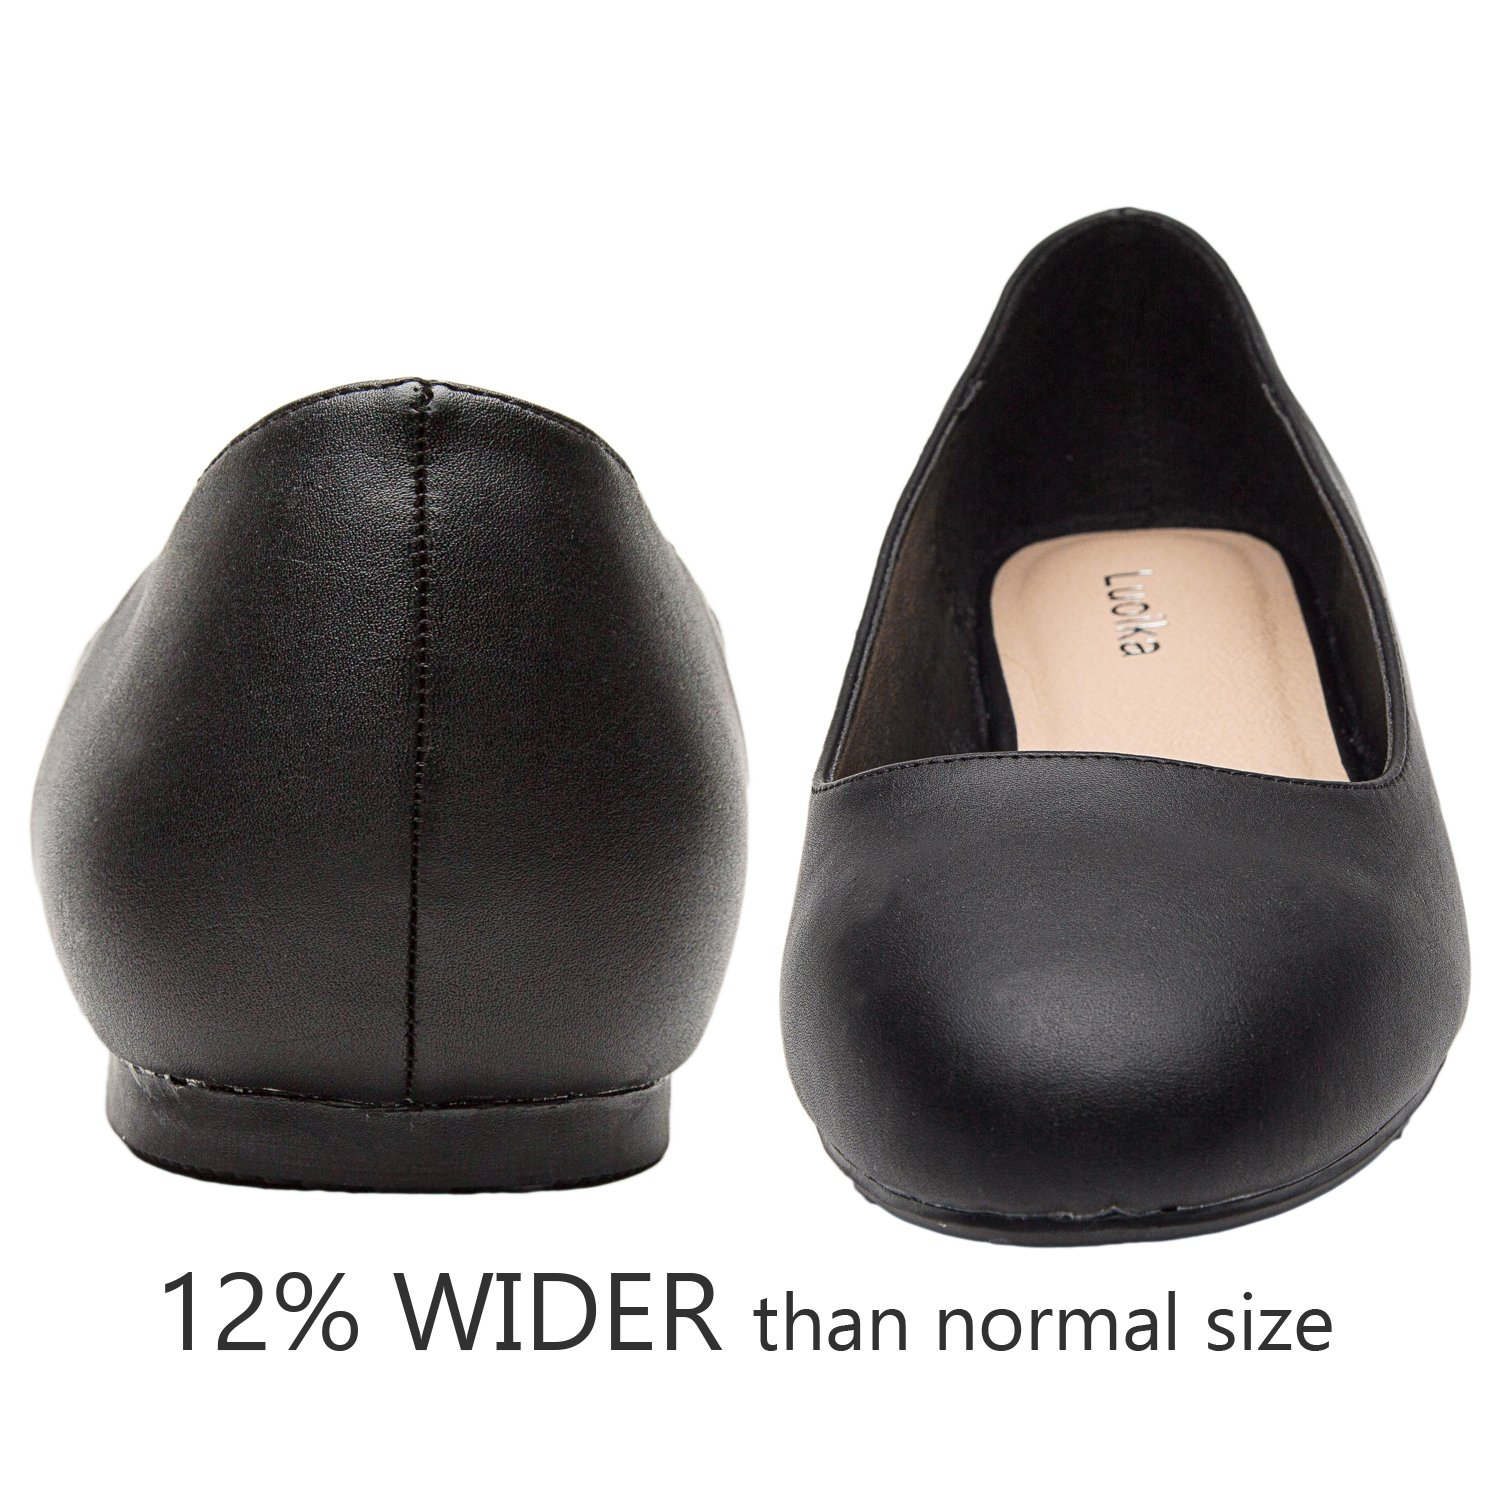 Luoika Women's Wide Width Flat Shoes - Comfortable Slip On Round Toe Ballet Flats. (180110 Black PU,9WW) by Luoika (Image #4)